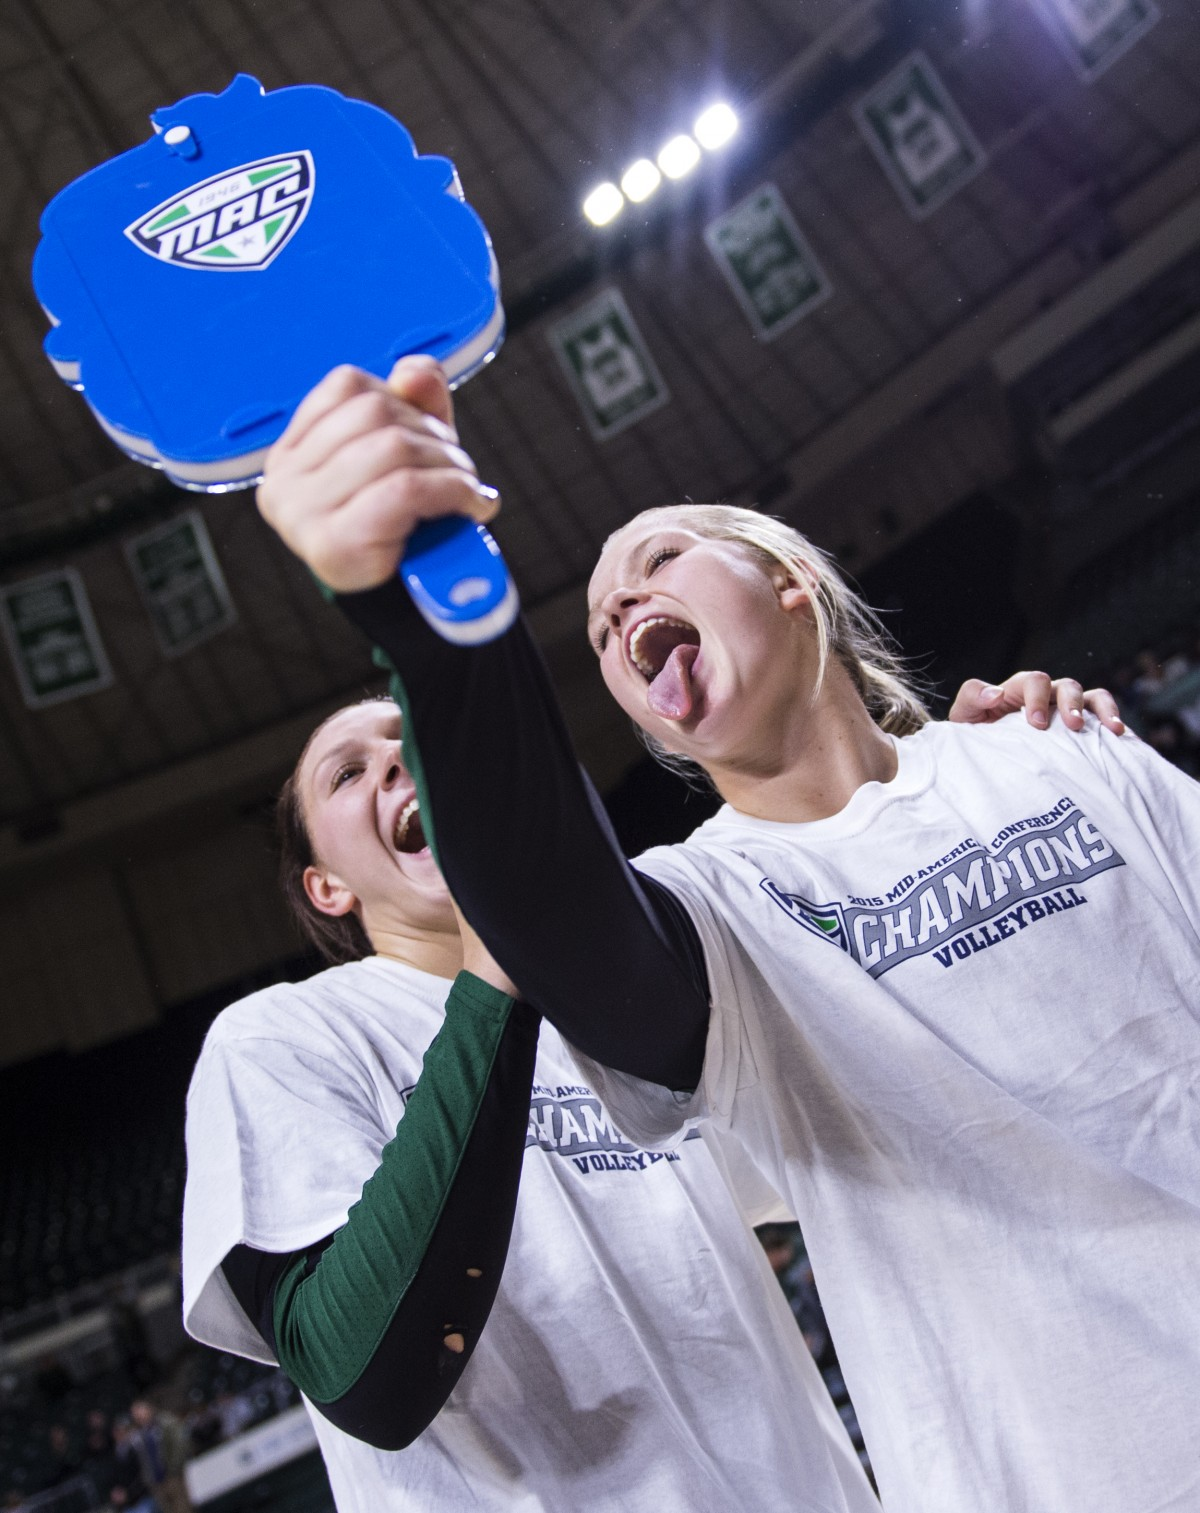 Ohio University junior Mallory Salis and redshirt junior Aubree Hord celebrate after Ohio University defeated Northern Illinois to become the 2015 MAC Volleyball Champions at the Convocation Center in Athens, Ohio, on Sunday, Nov. 22, 2015.